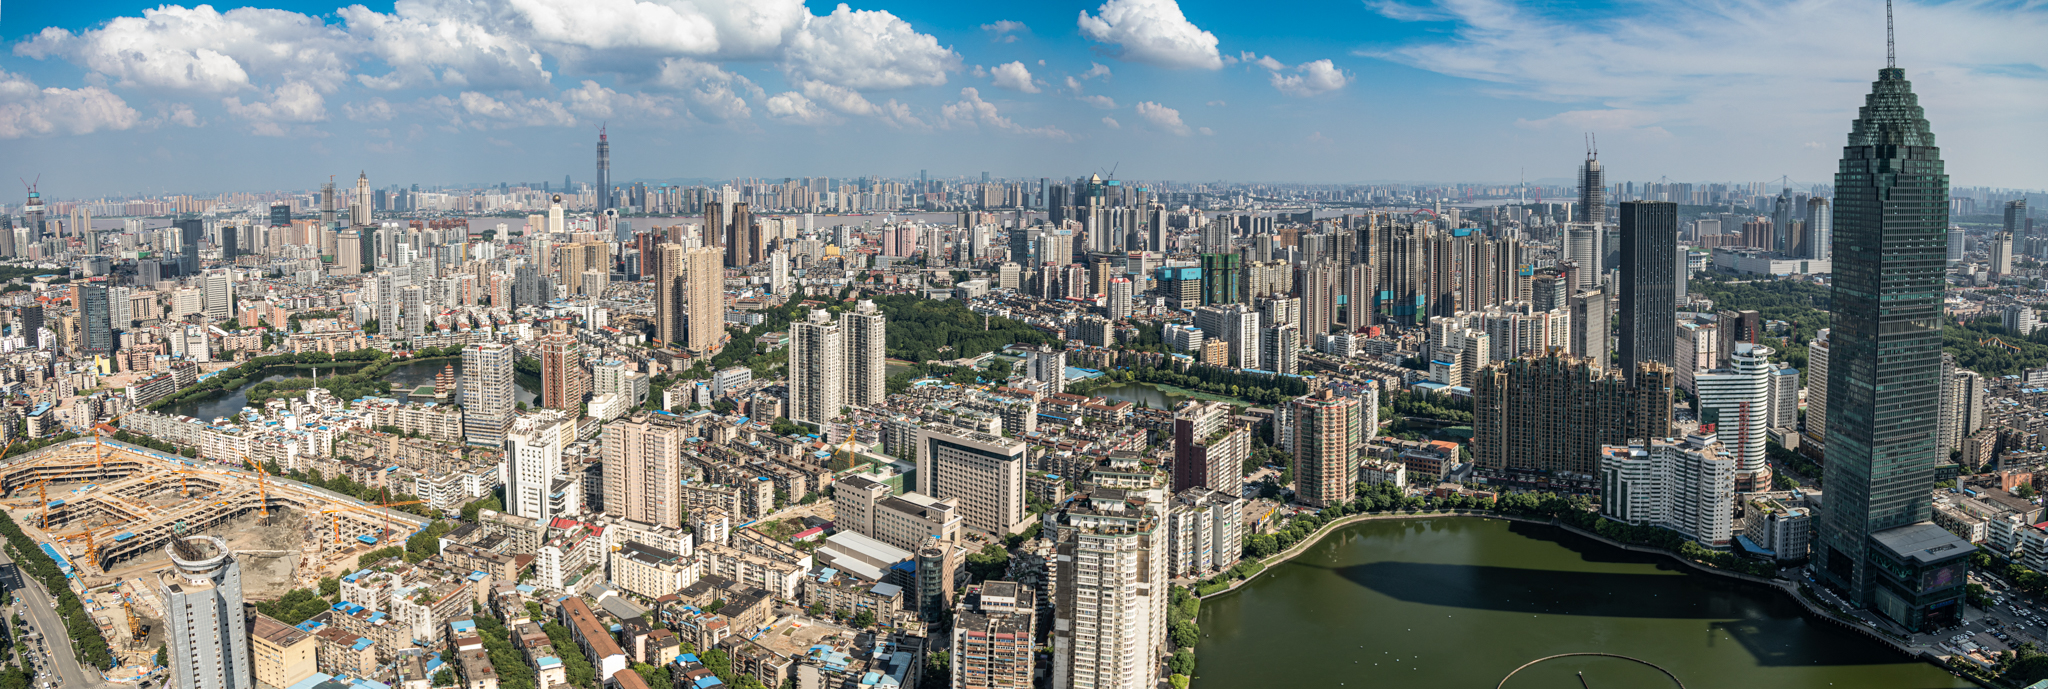 A scenic city panorama featuring the Minsheng Bank Building (far right), which will house the future U.S. Consulate General in Wuhan. Photo by Jamie Fouss